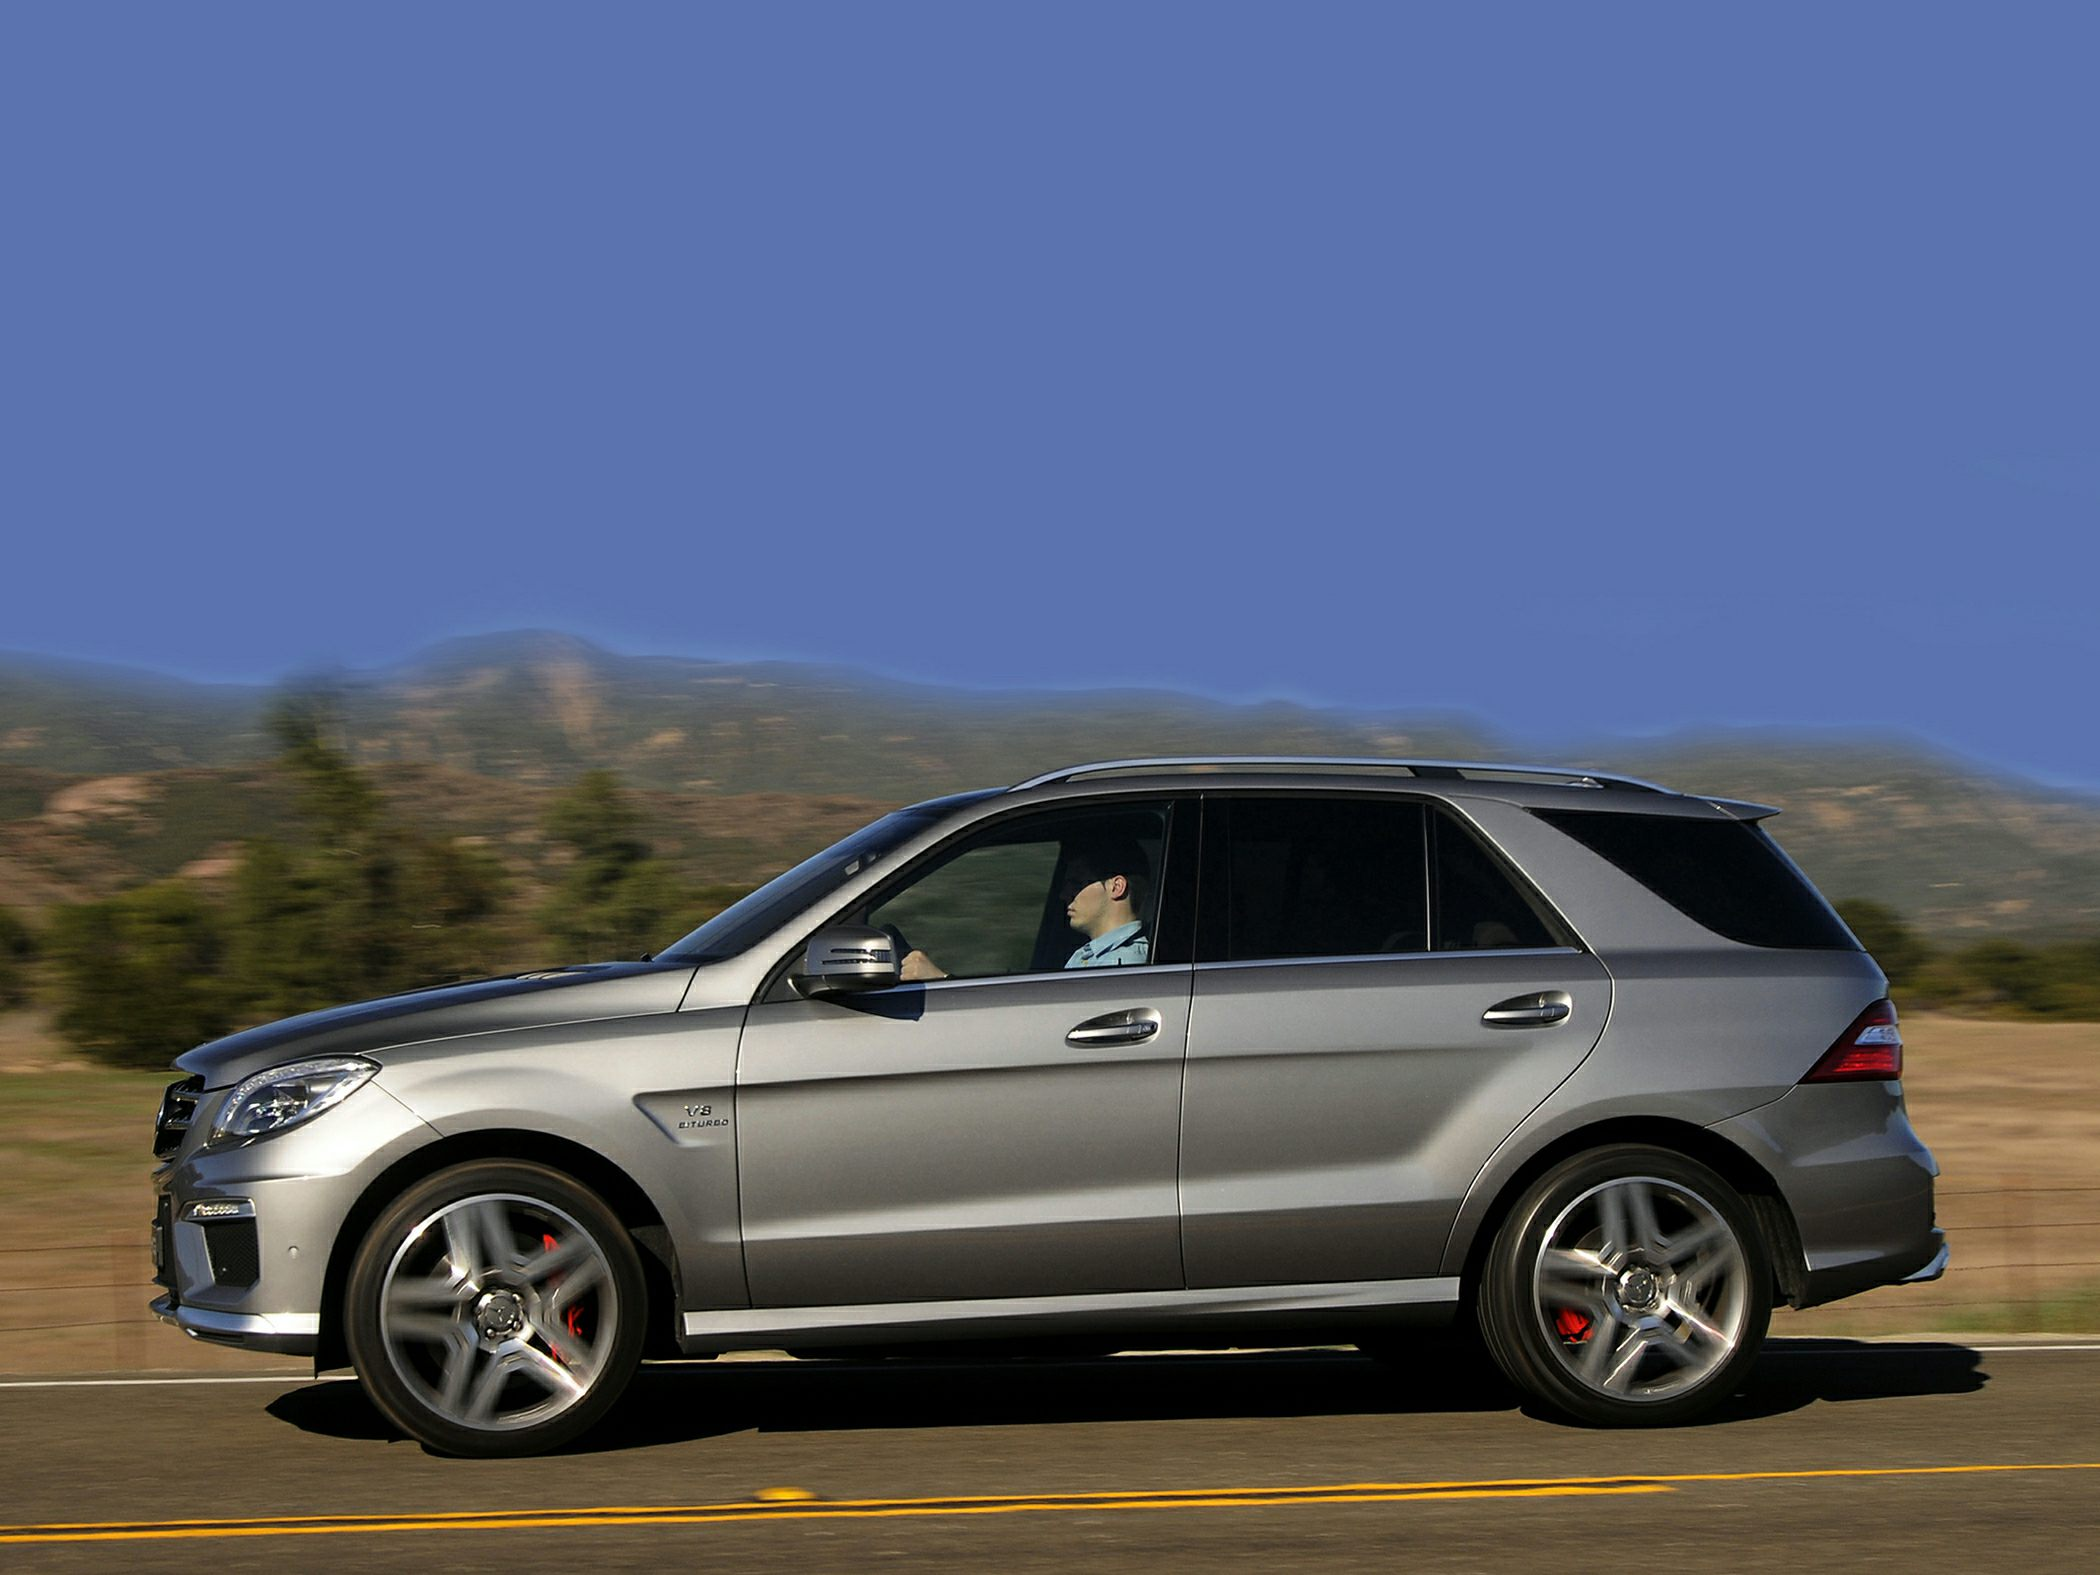 2014 mercedes-benz ml63 amg